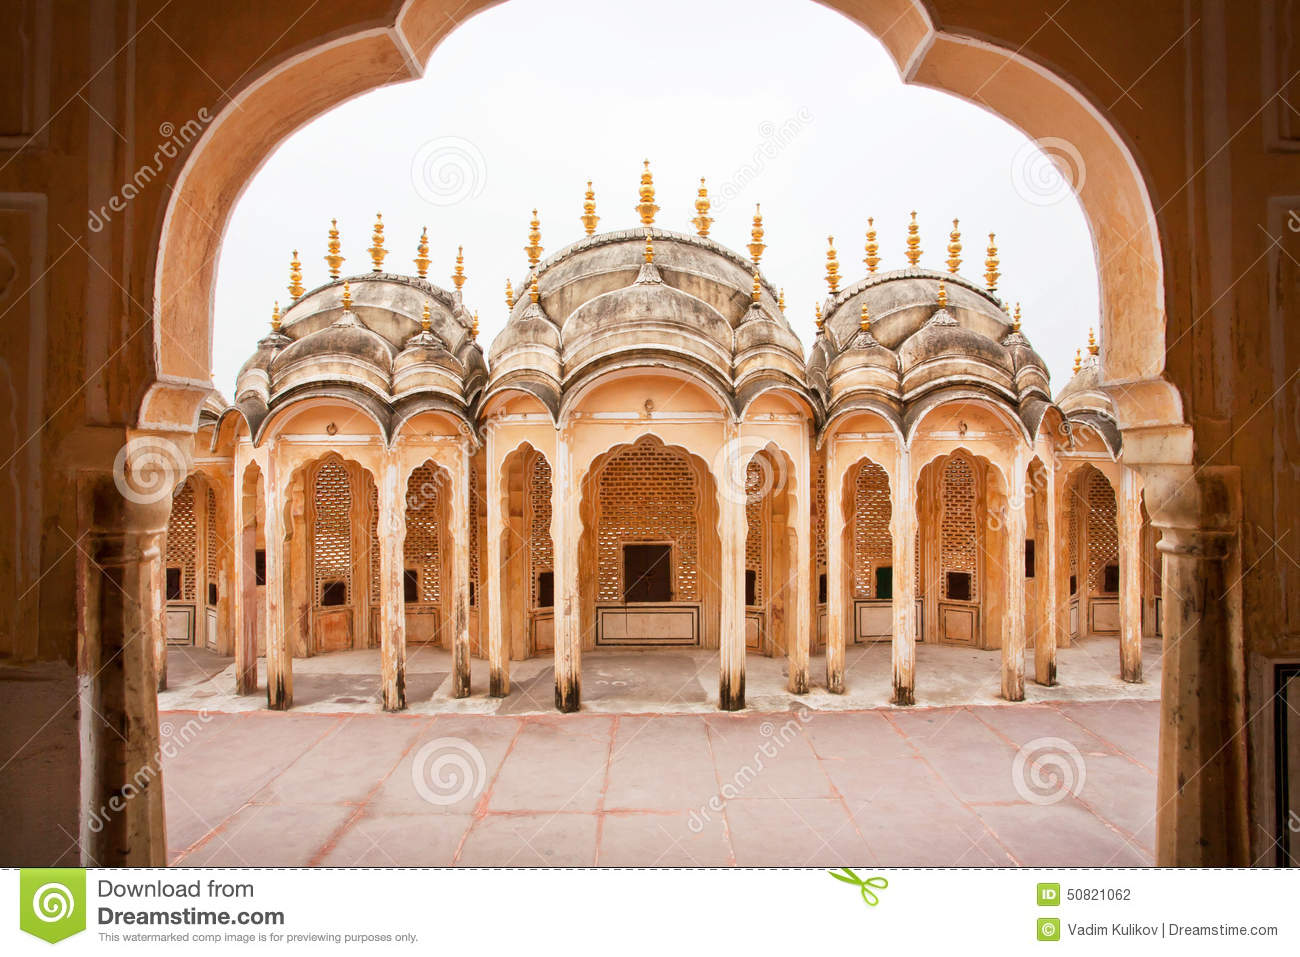 Arches of an ancient building in indian style stock photo for Decor india jaipur